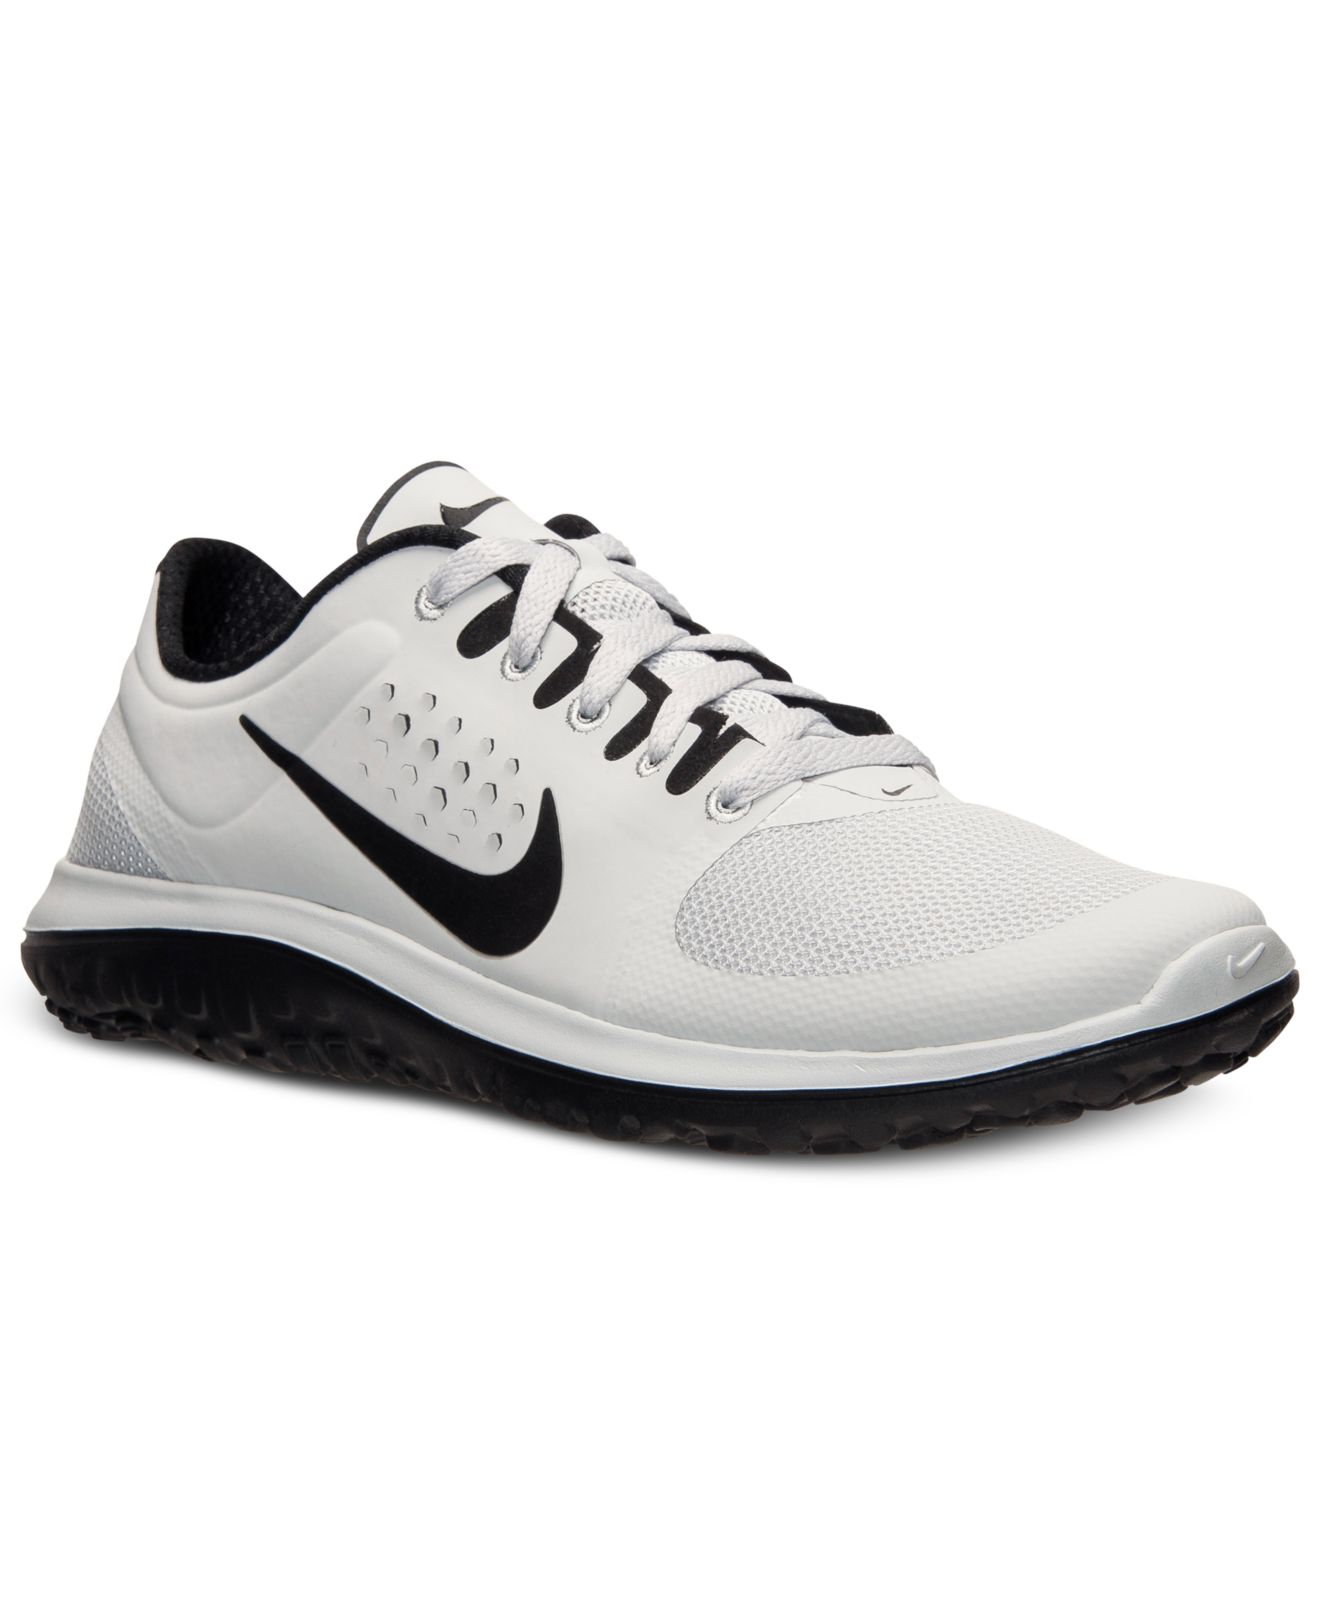 Cheap Nike Free 4.0 V3 Running Shoes Mens Grey Black [Cheap Nike2211] $73.99